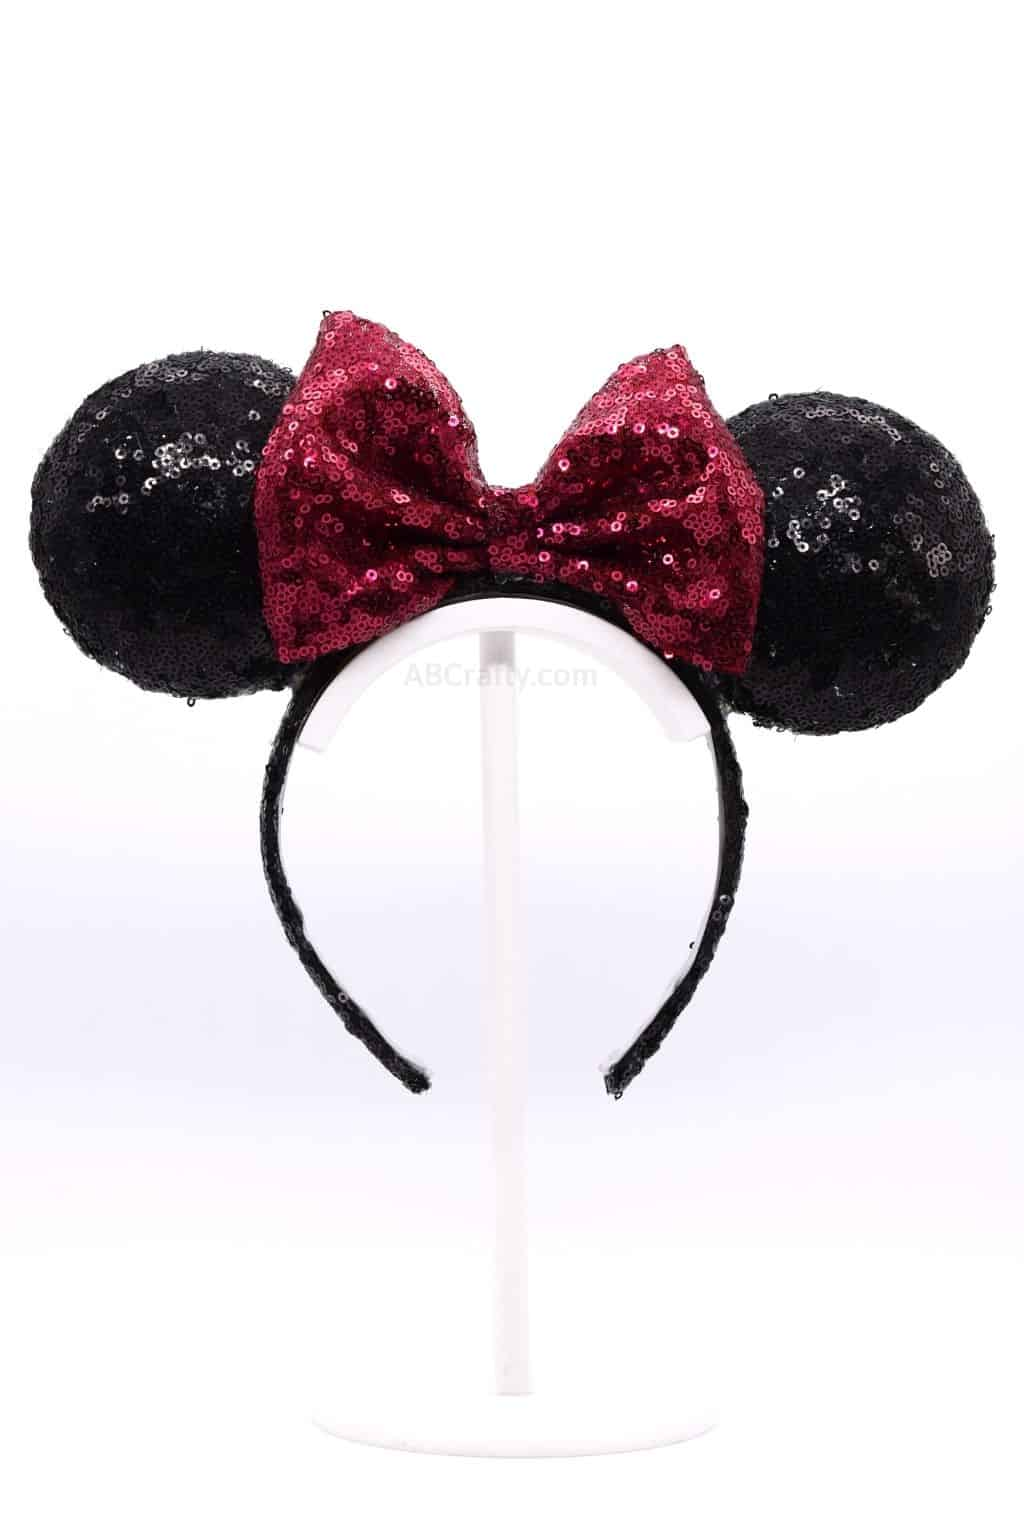 DIY Light Up Minnie Ears. It's a black sequined headband with a red sequined bow, creating the classic Disney Minnie Mouse ears